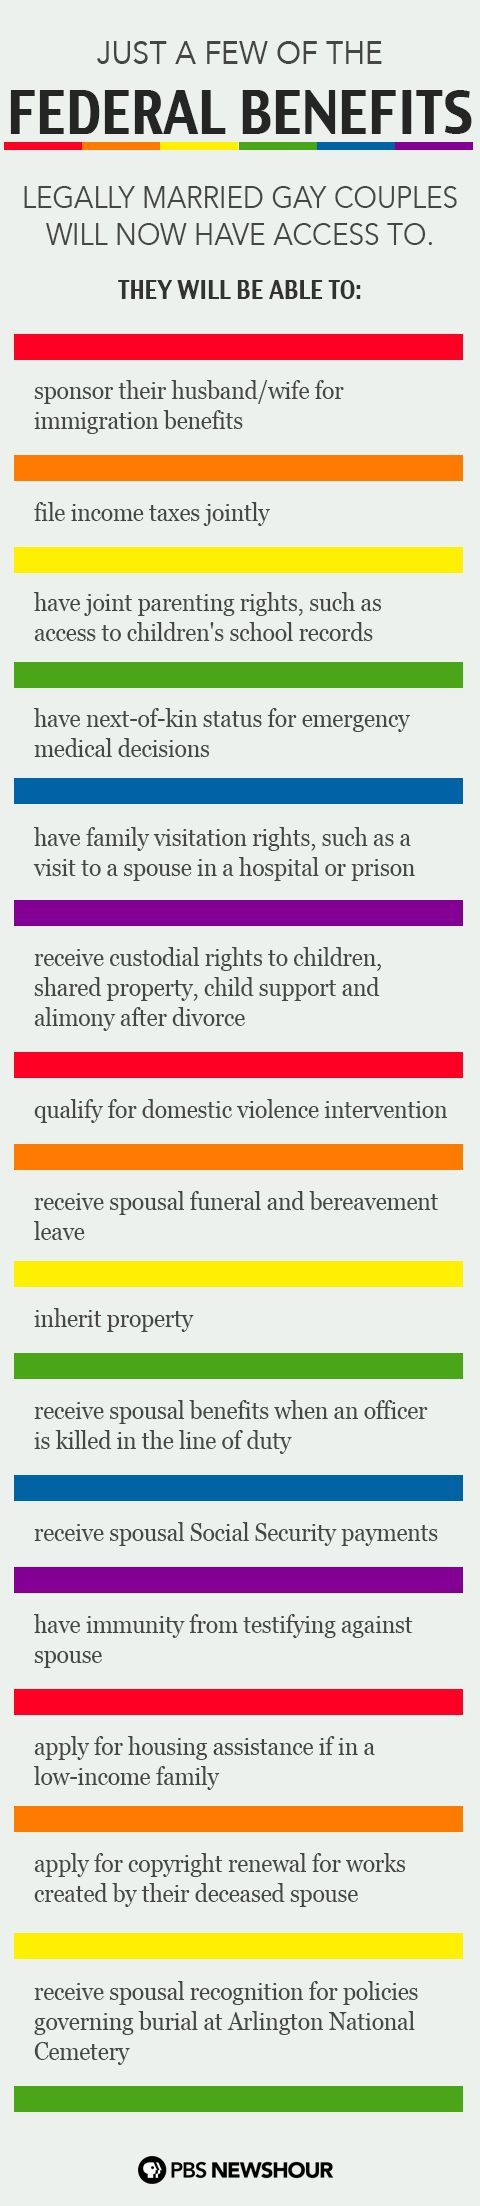 from Axel gay marriage benefits